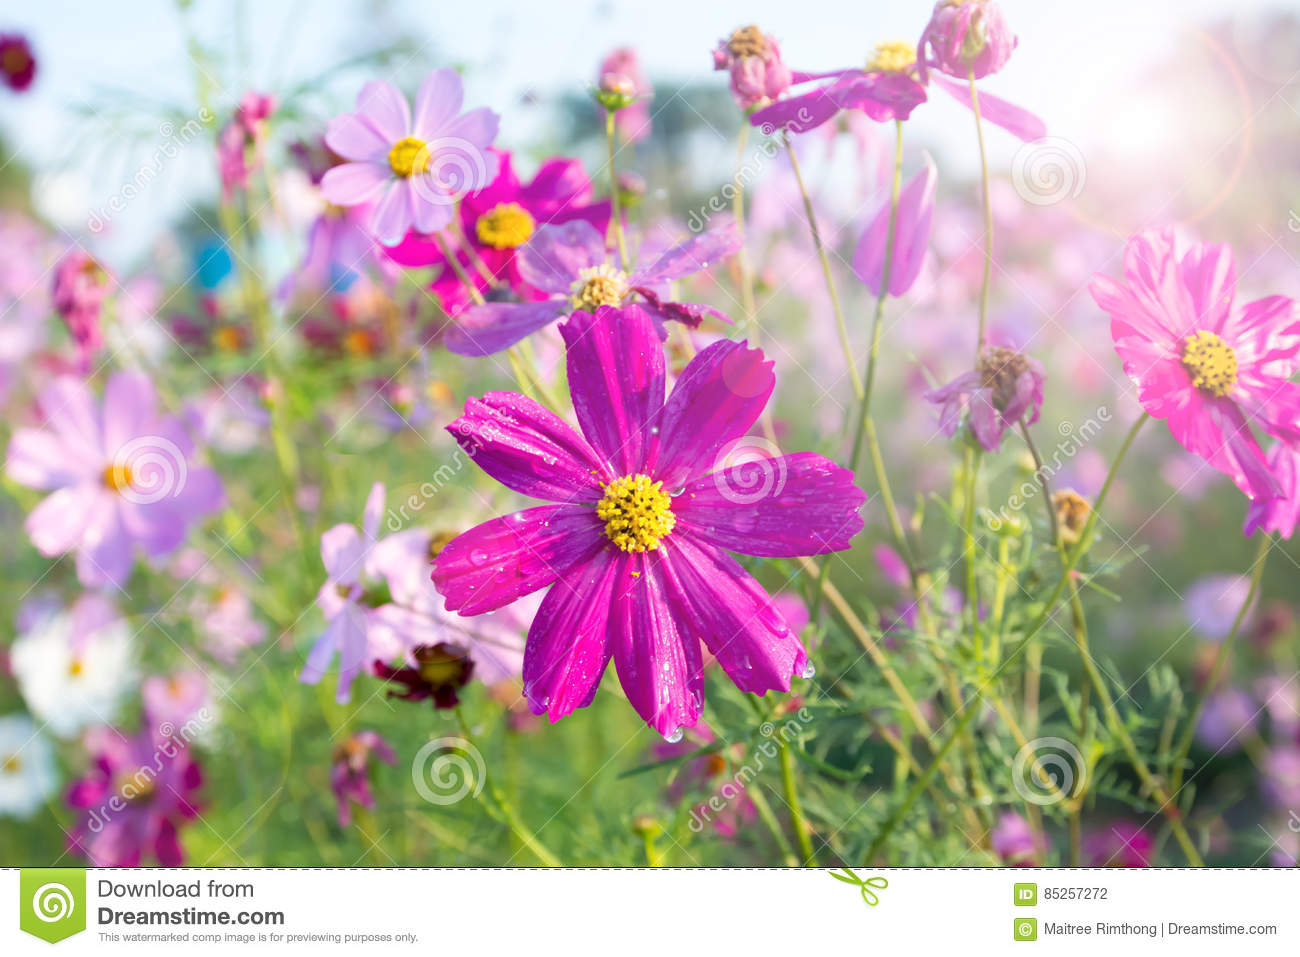 Beautiful flowers blooming in the field stock photo image of sunny beautiful flowers blooming in the field izmirmasajfo